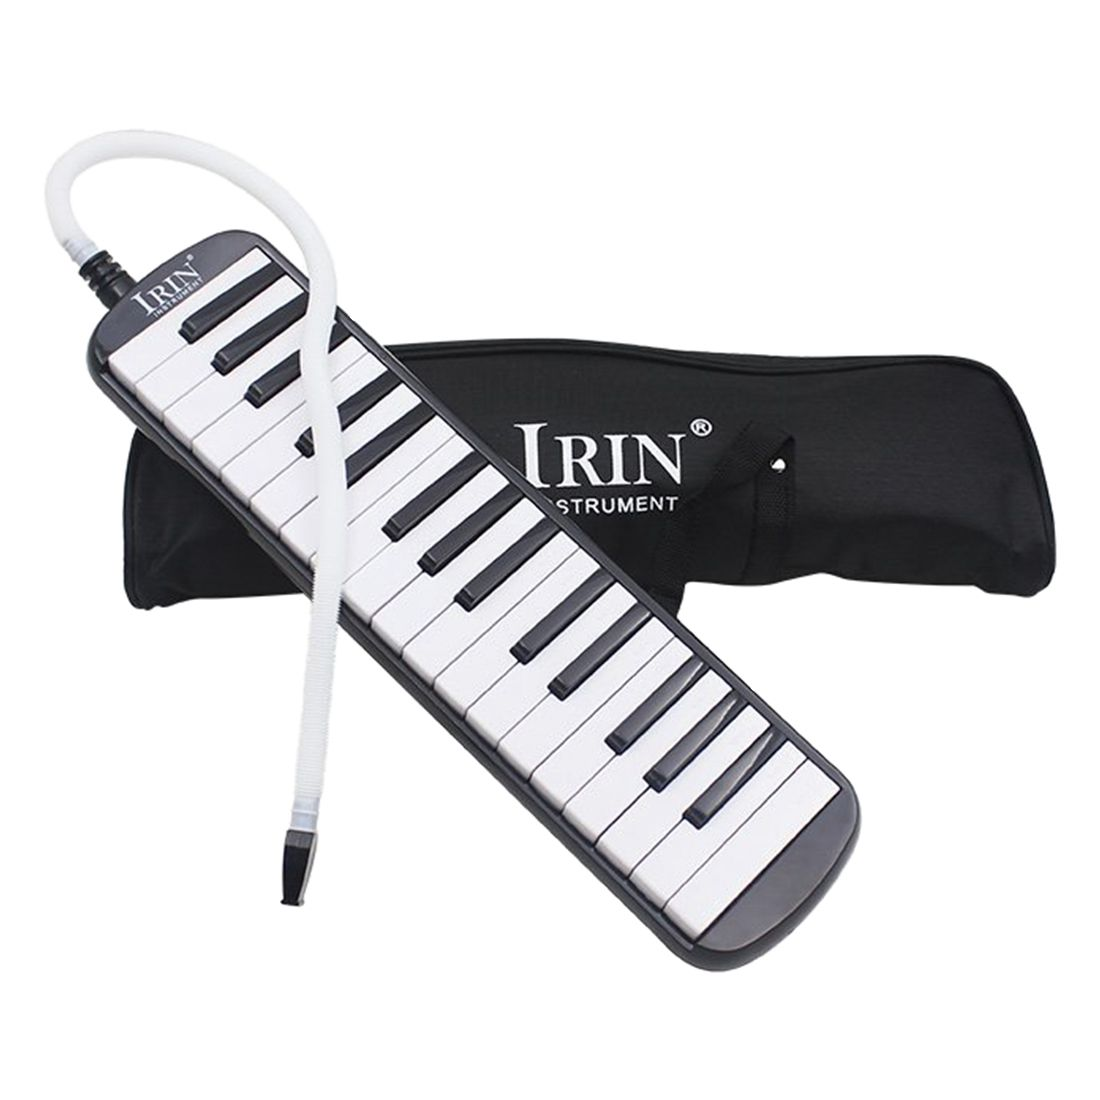 IRIN 32/37 Key Piano Style Melodica With Deluxe Carrying Case Organ Accordion Mouth Piece Blow Key Board Black Instrument